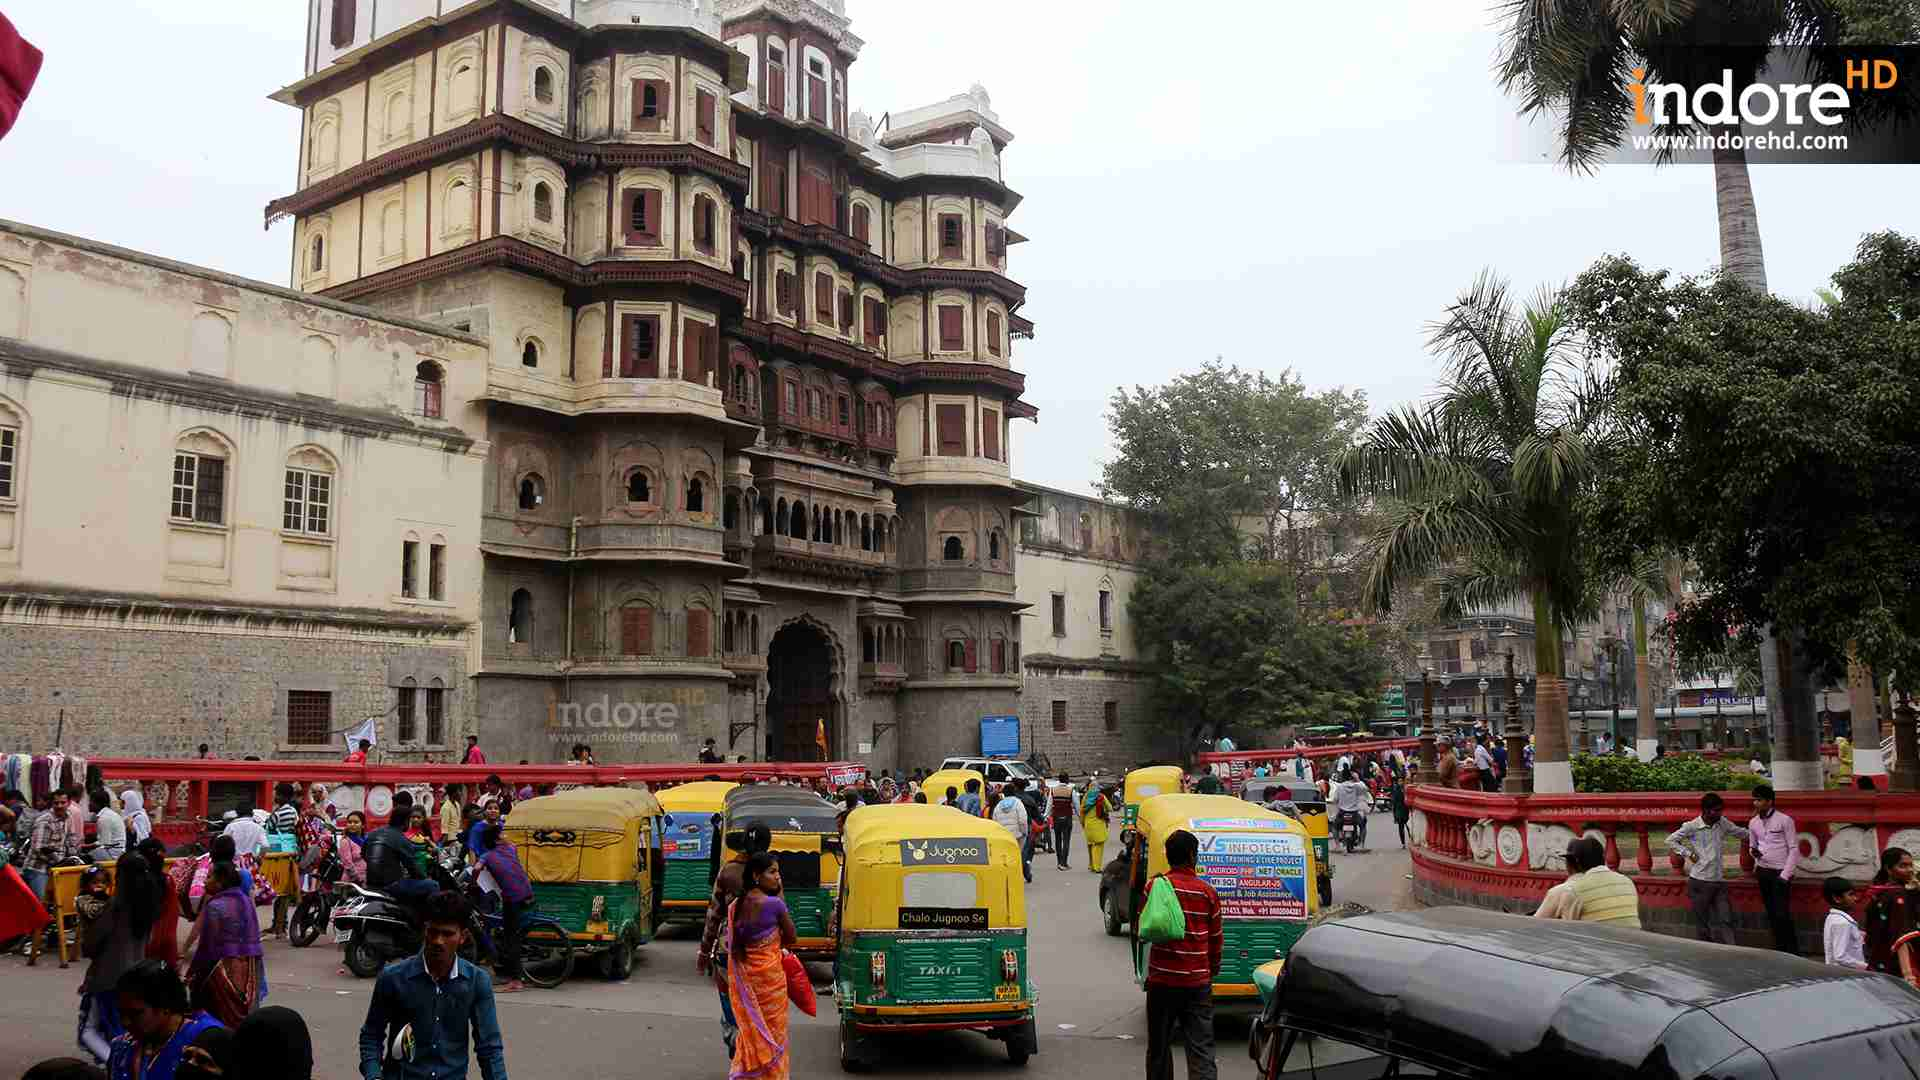 markets of indore